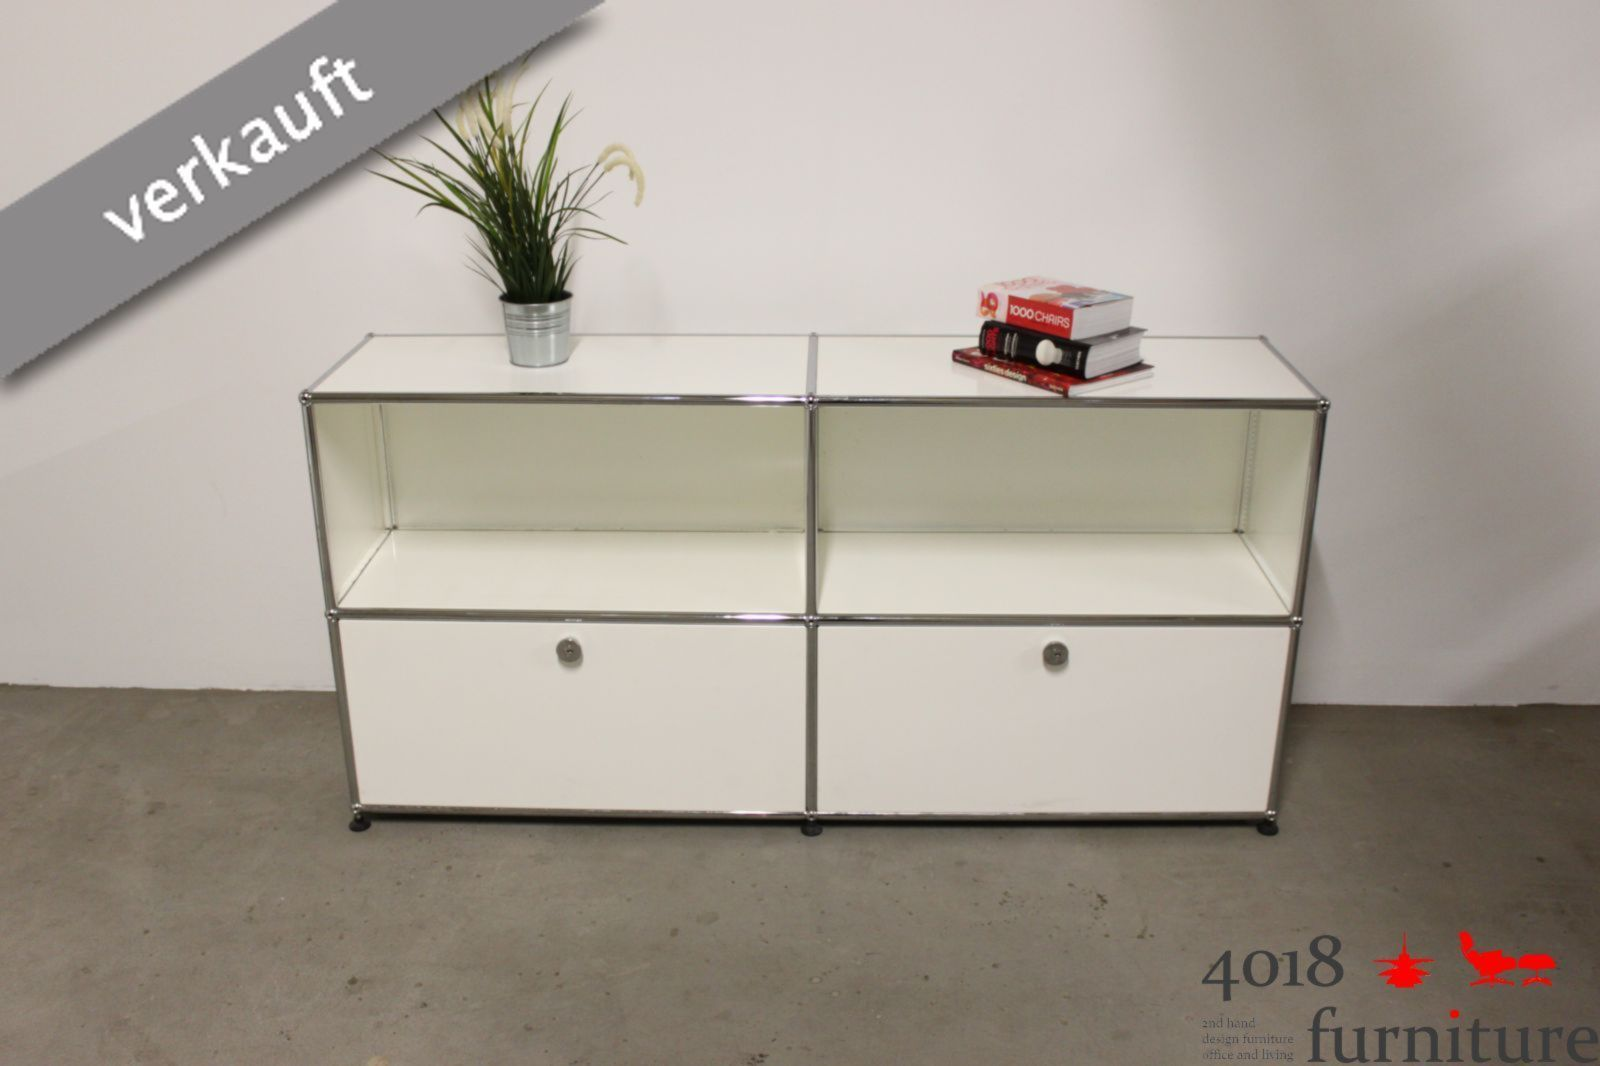 usm haller sideboard weiss mit 4 feldern 2 ausz ge 2 offen. Black Bedroom Furniture Sets. Home Design Ideas